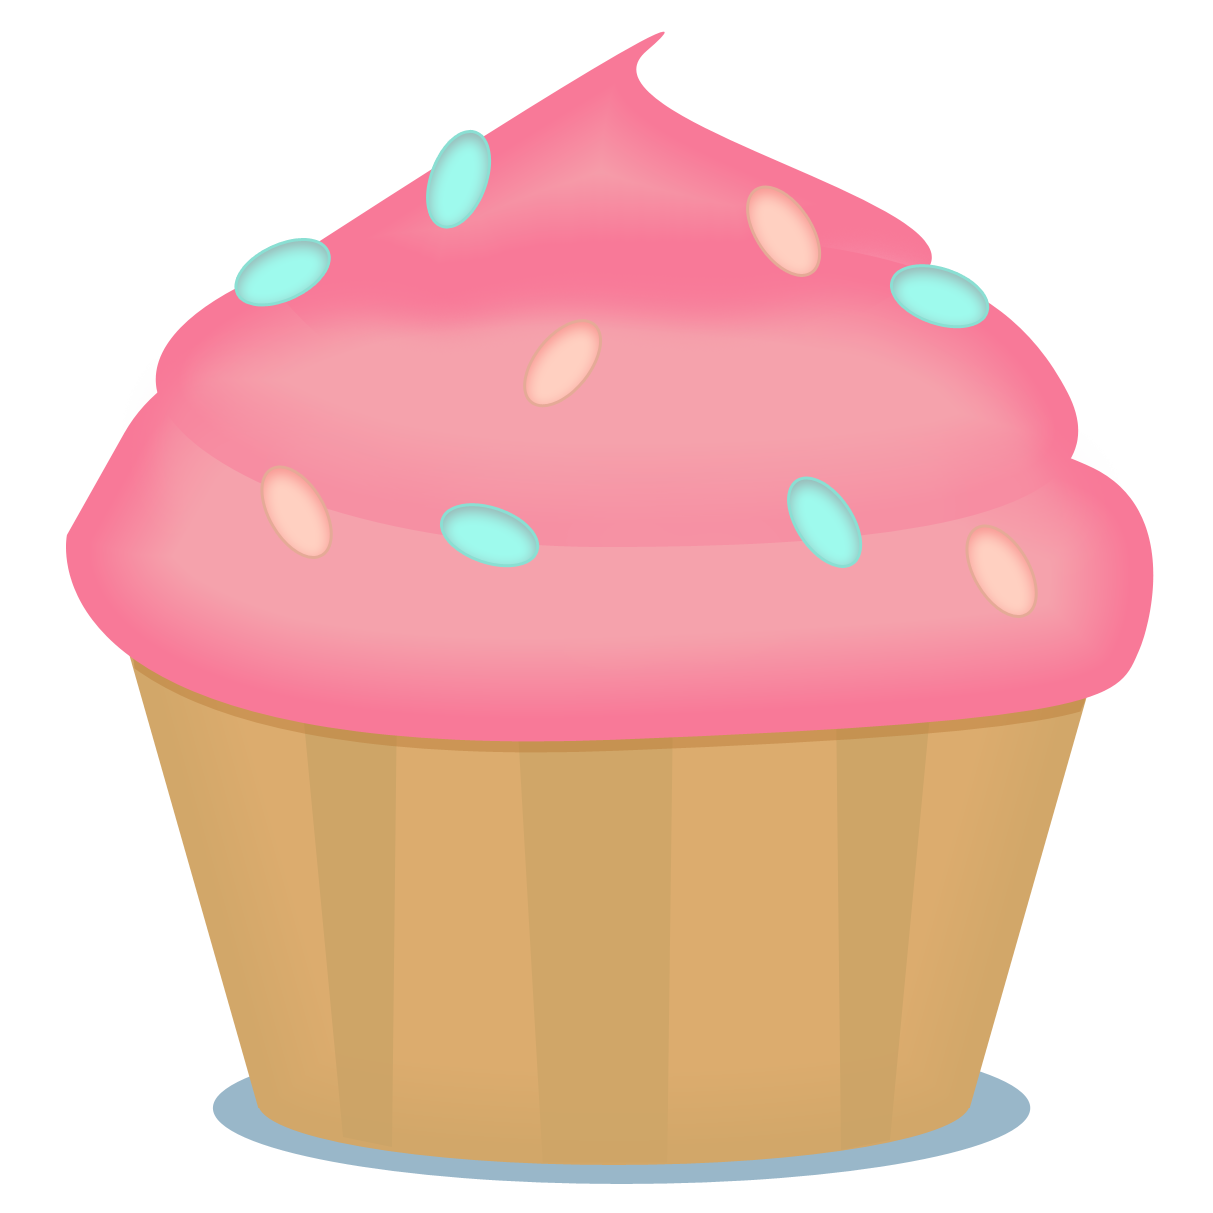 png royalty free library drawing cupcakes bake sale #93967282